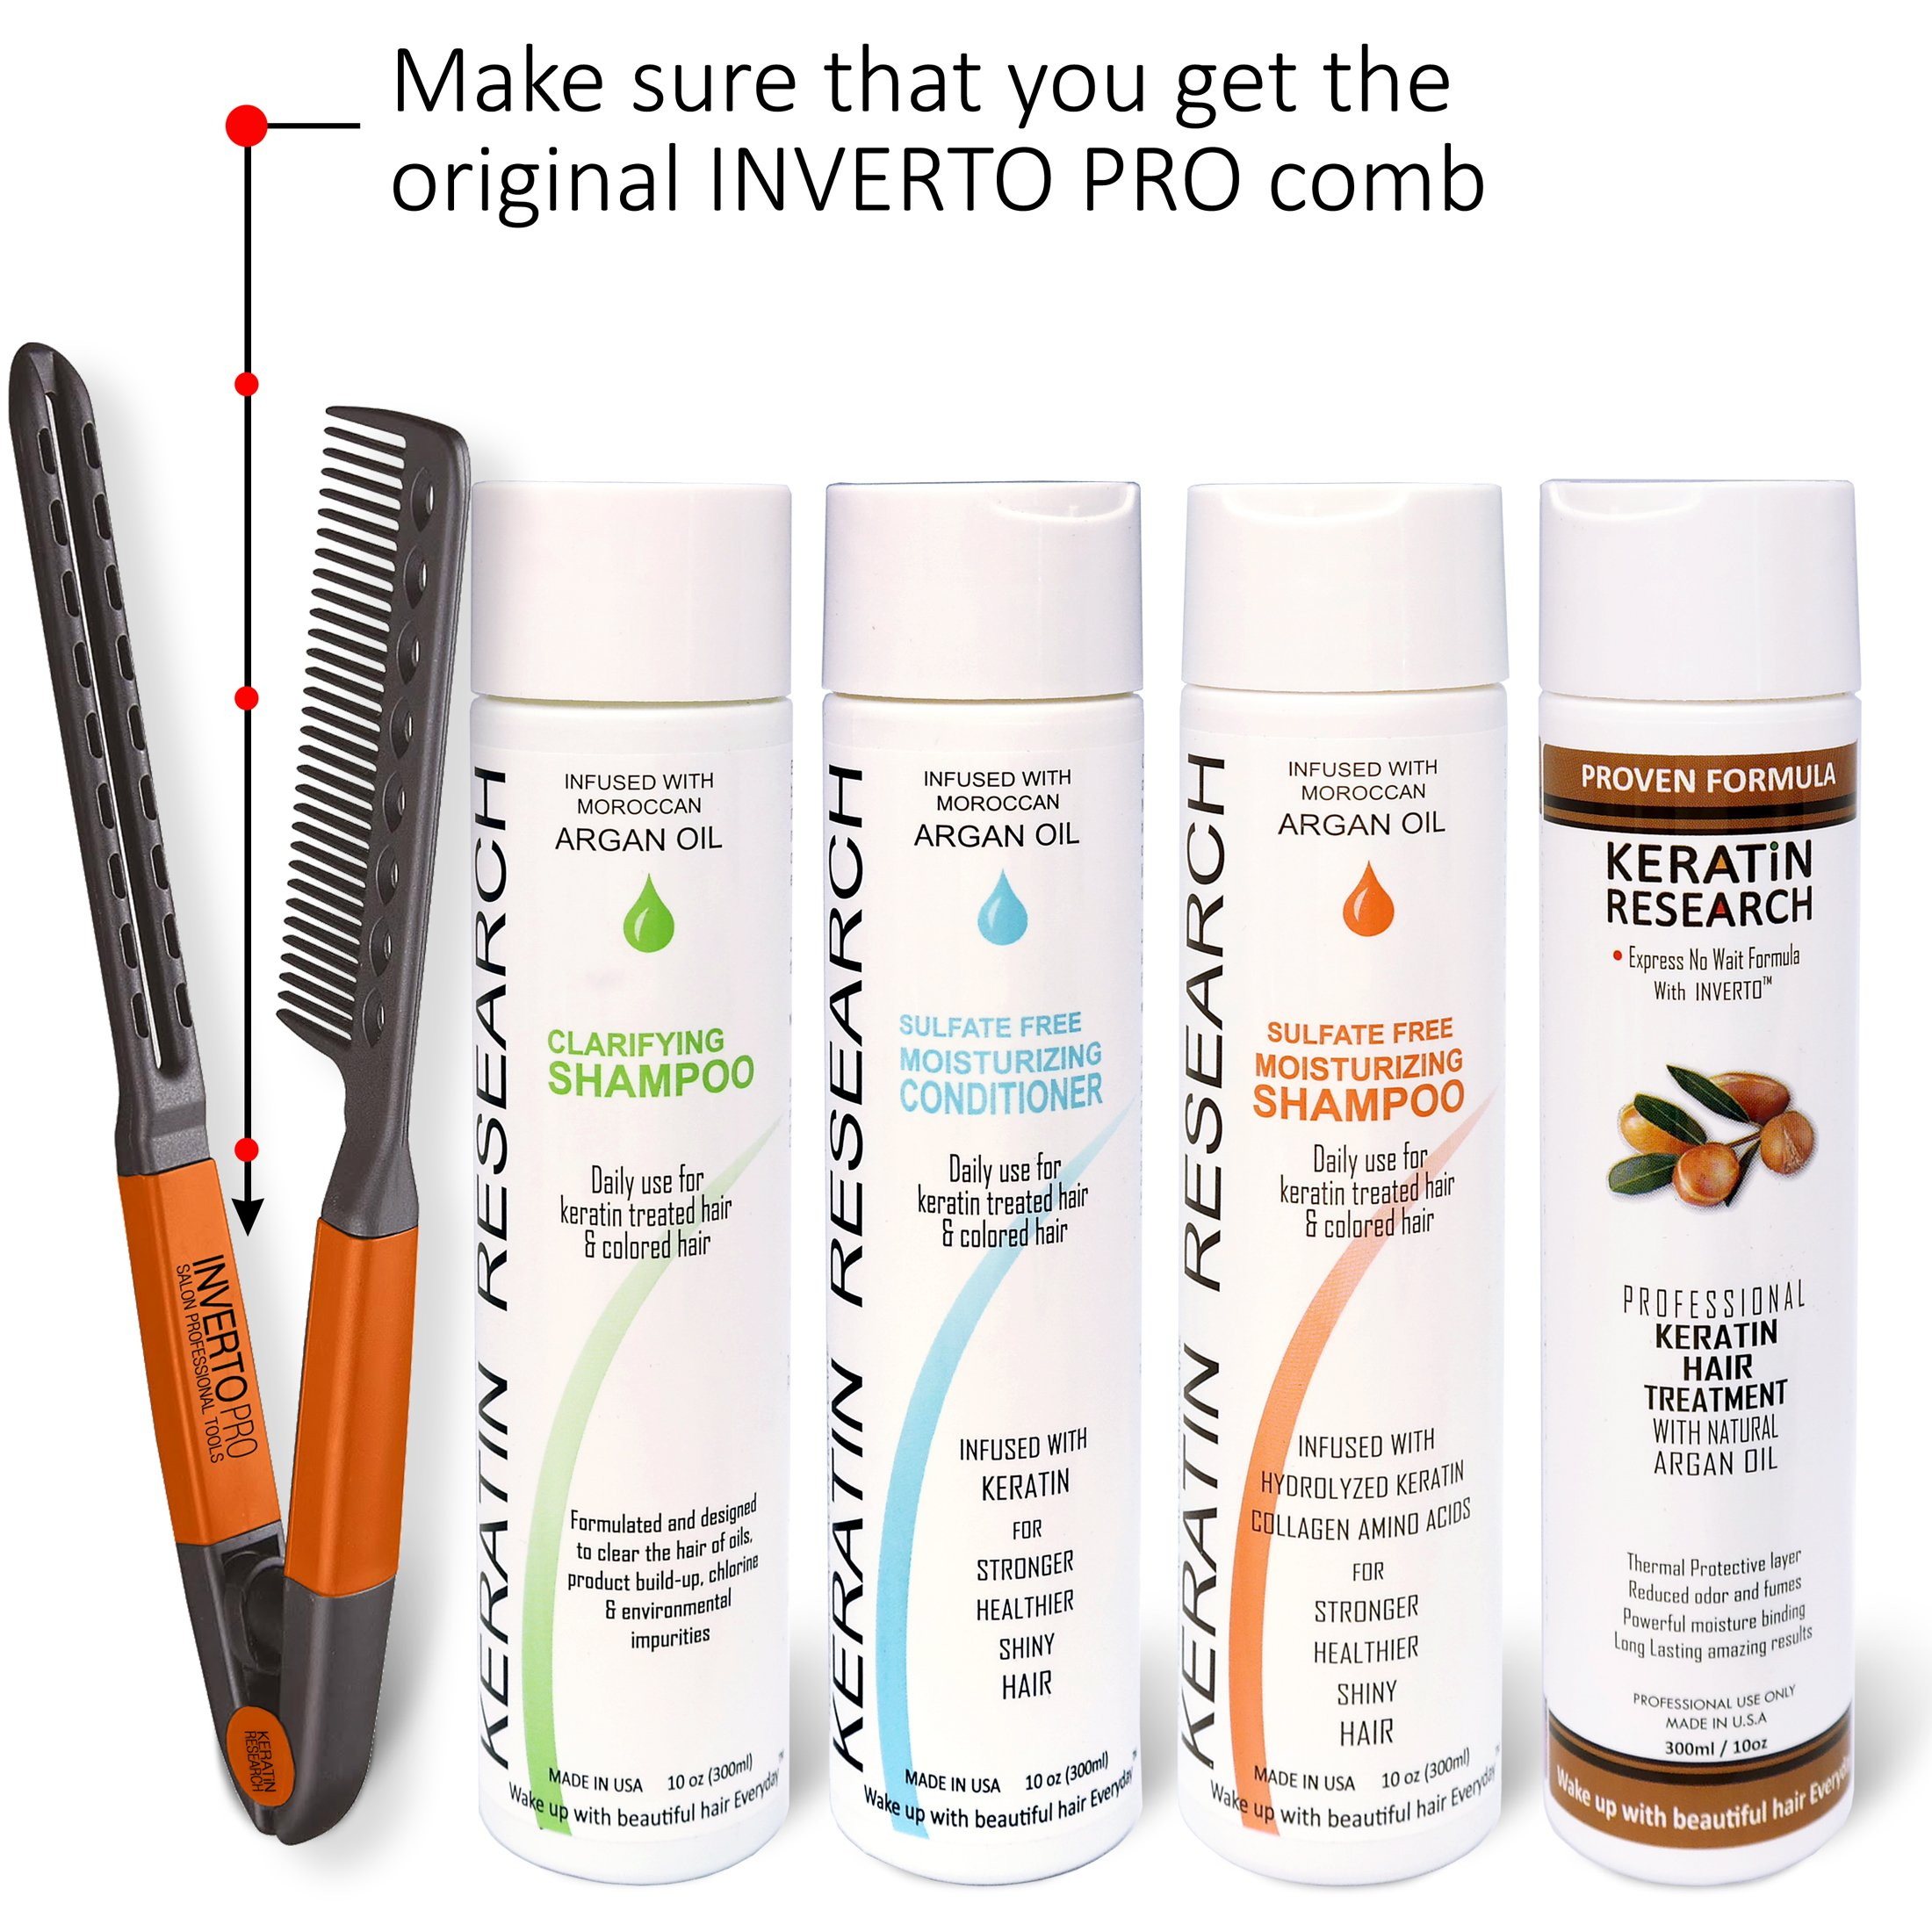 Brazilian Keratin Blowout Hair Treatment 4 Bottles 300ml Value Kit Includes Sulfate Free and Easy Comb by Keratin Research (Image #1)